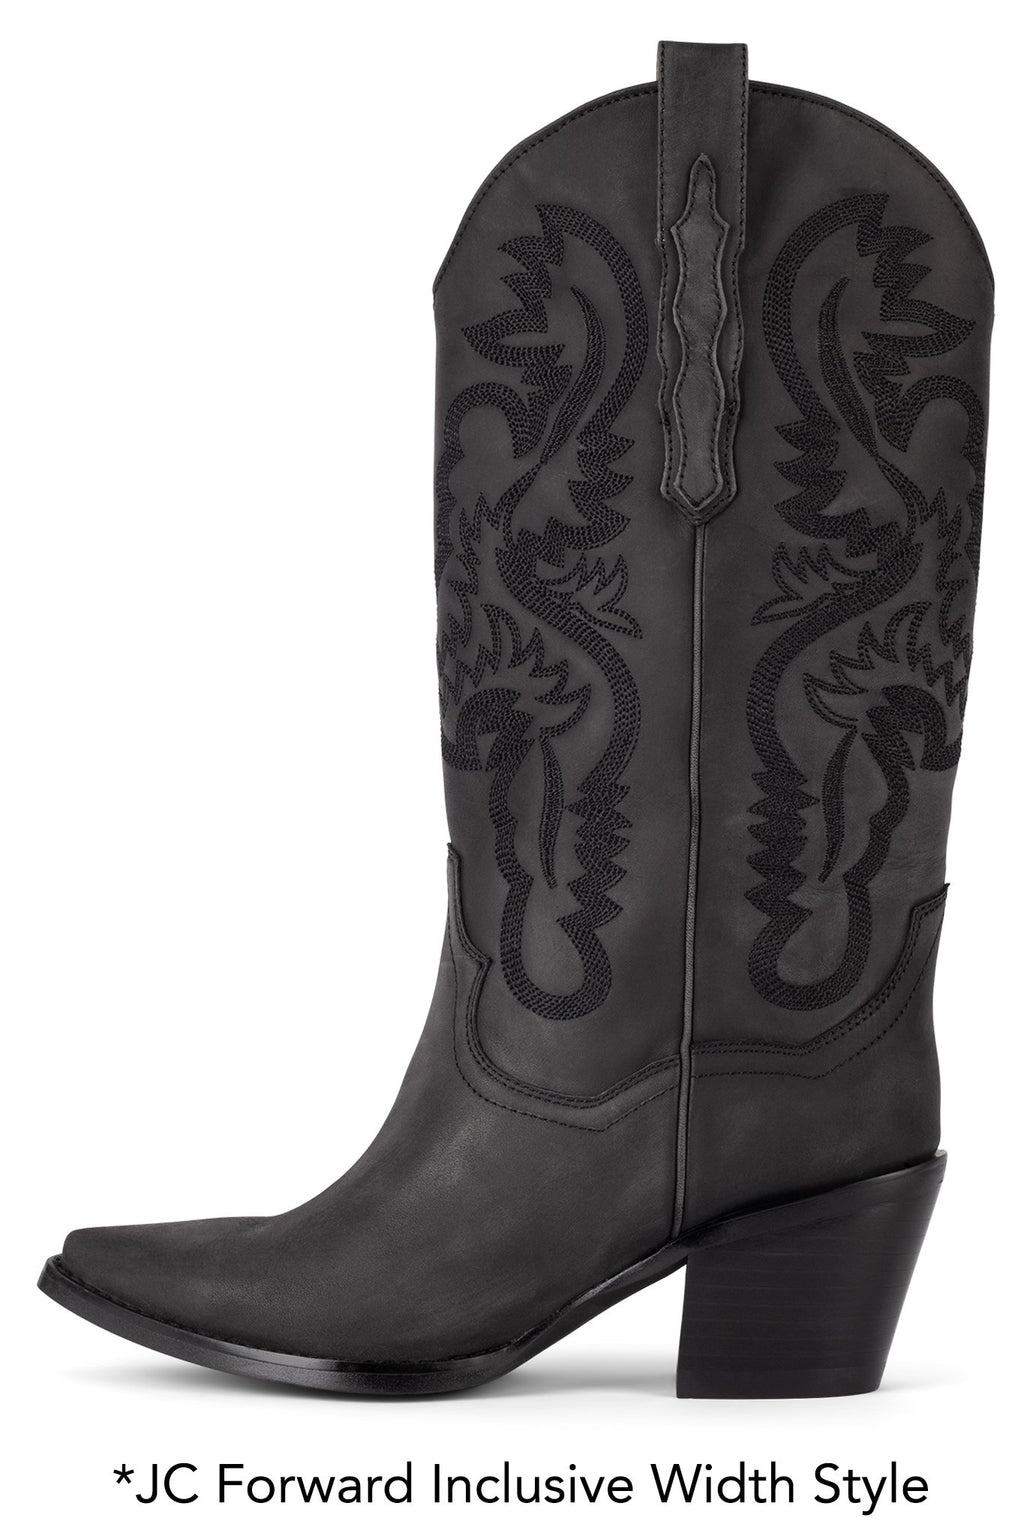 AMITY Mid-Calf Boot STRATEGY Black Washed 5W